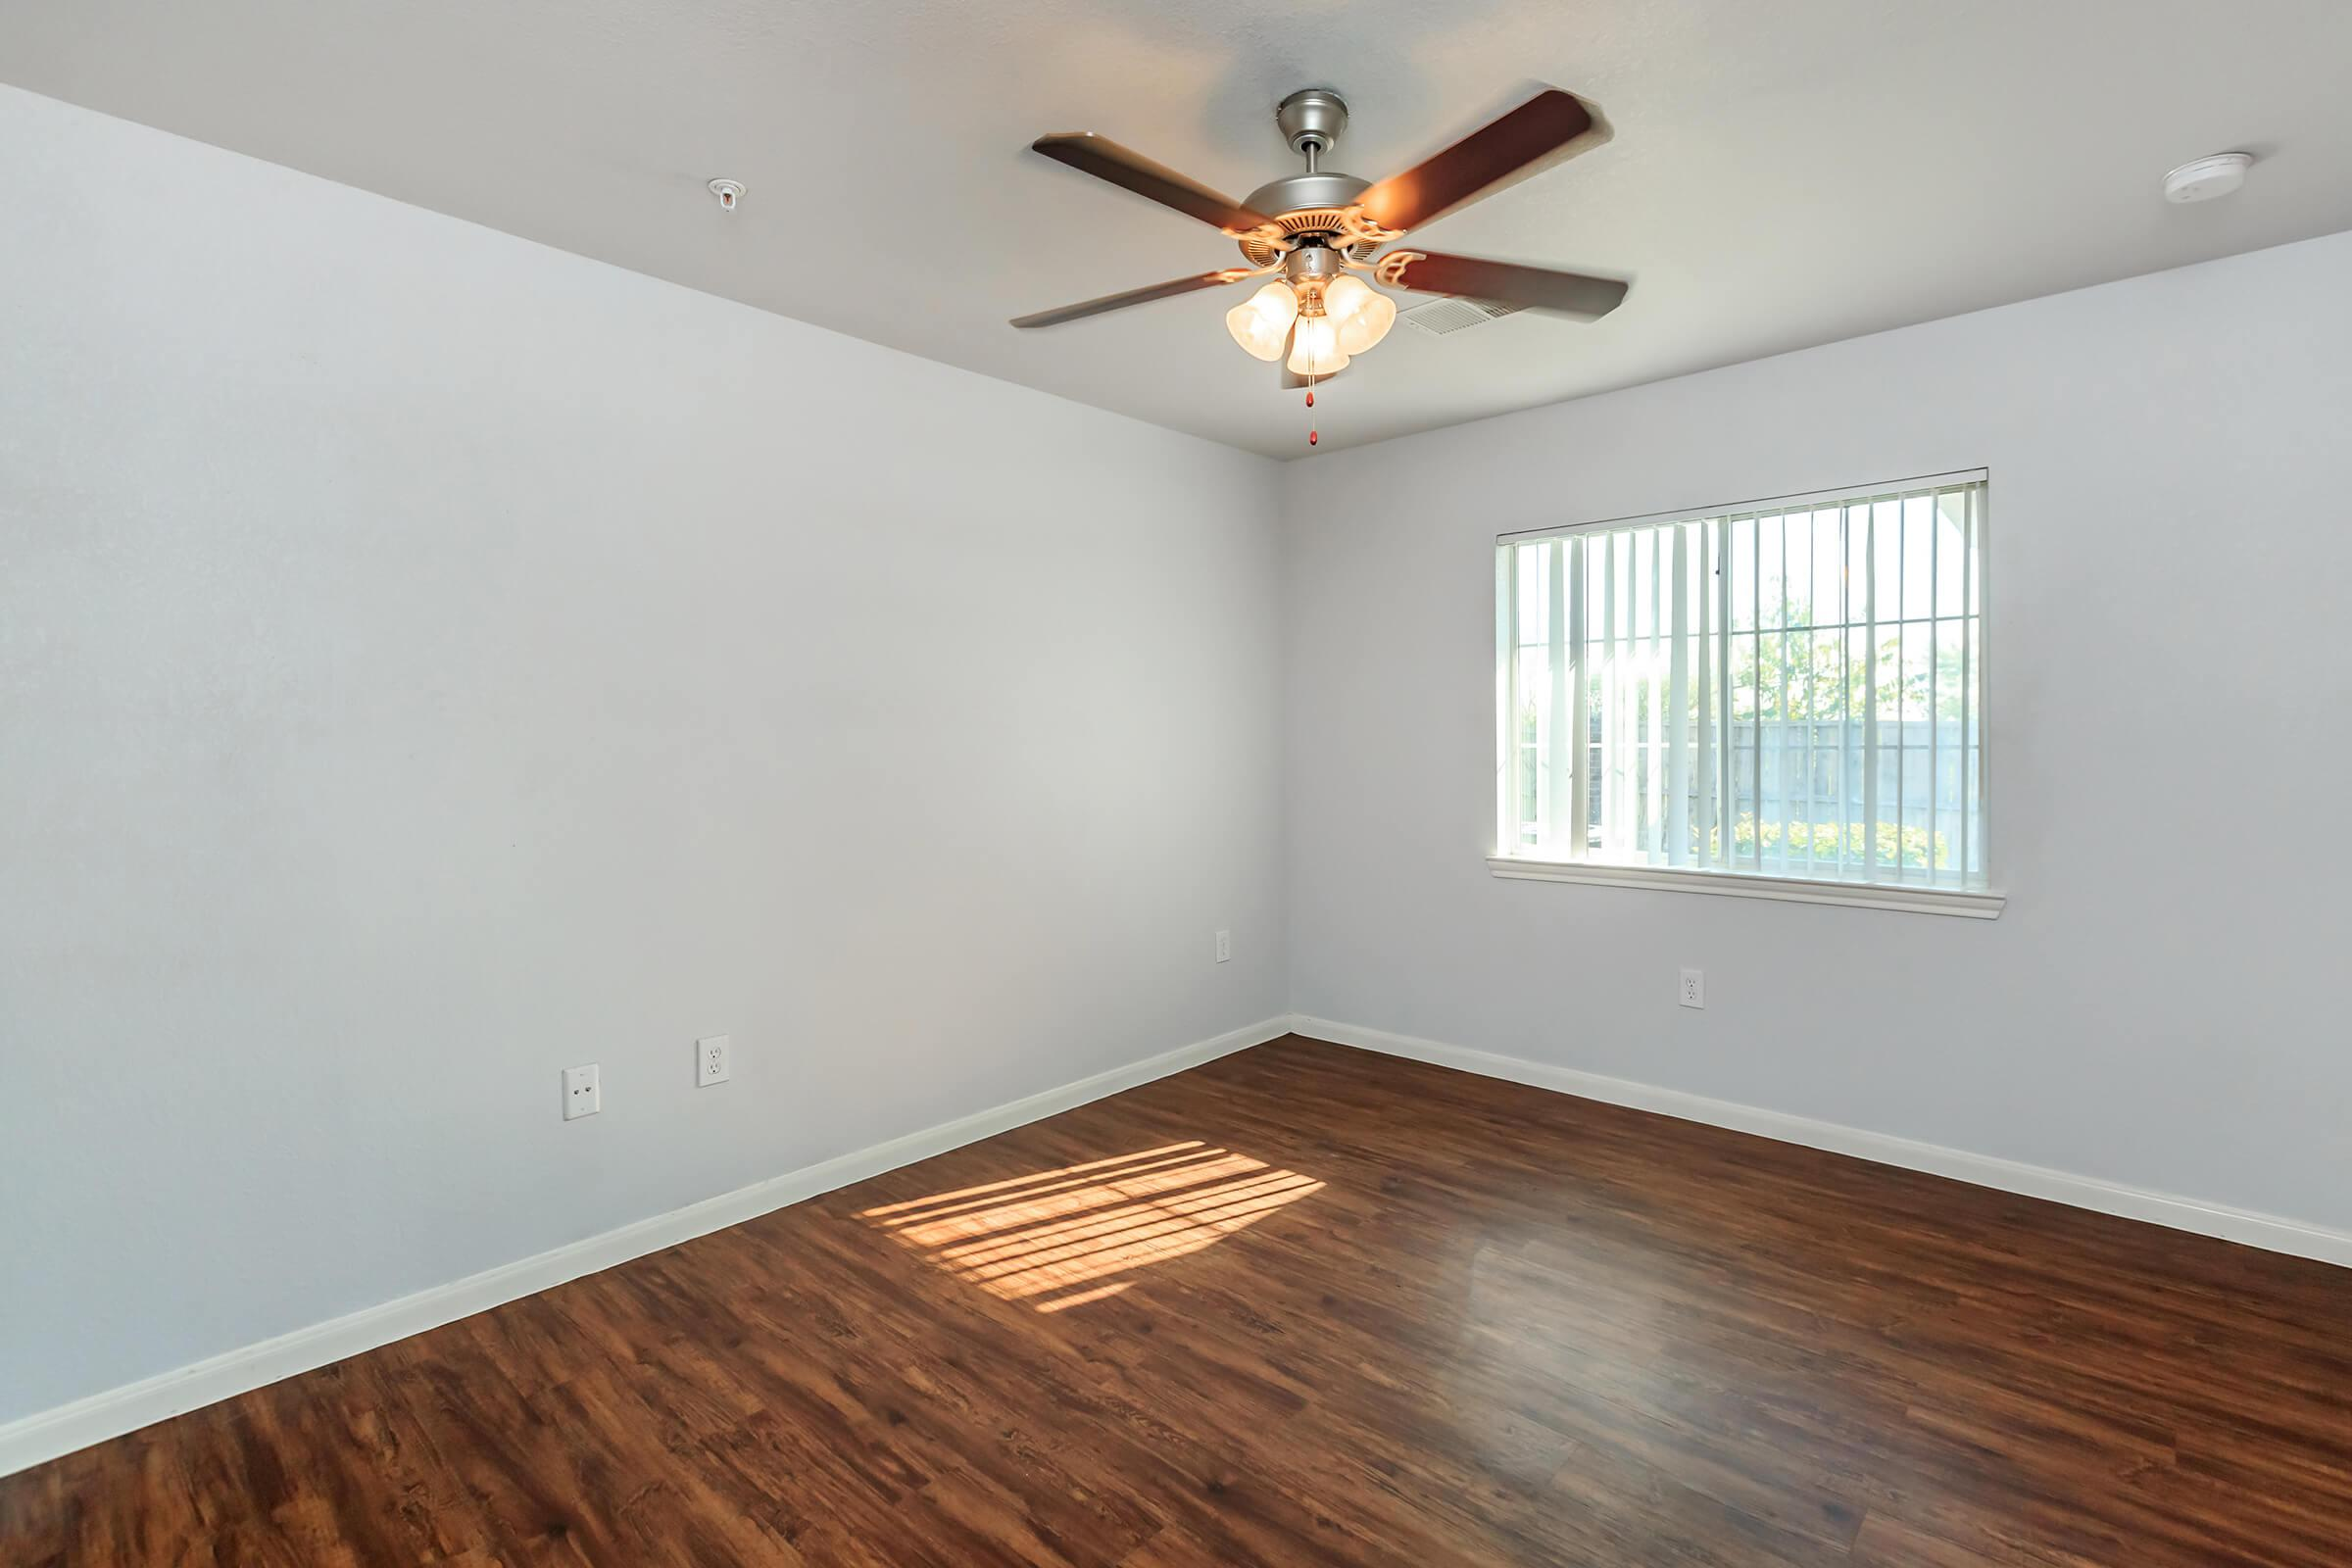 2 BEDROOM APARTMENT HOME FOR RENT IN TEXAS